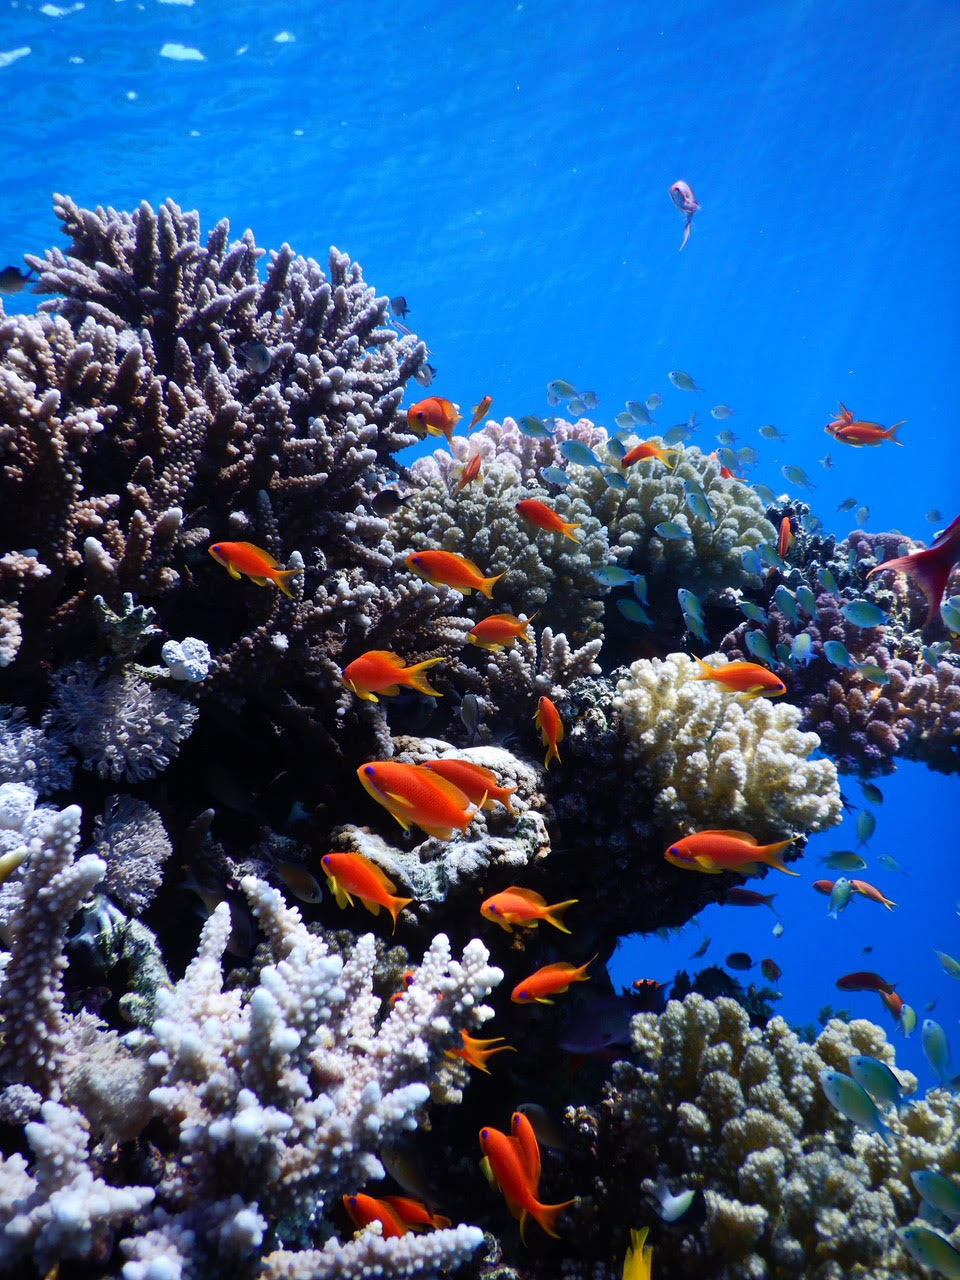 40a6ce8feab42 The Red Sea Transnational Research Center will study thousands of types of  fish and coral found